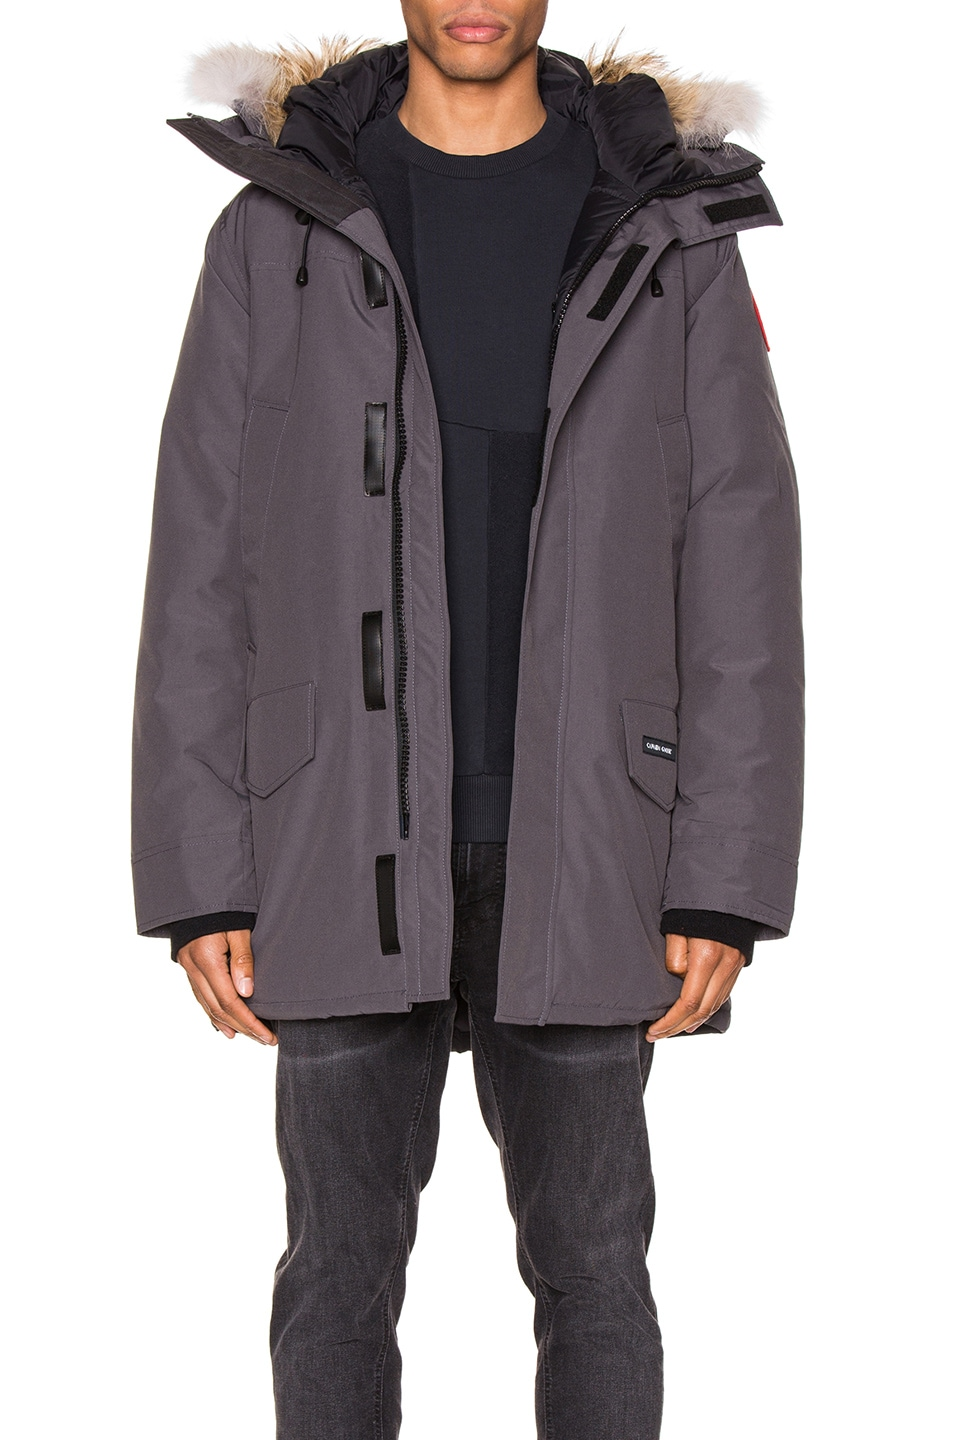 Image 1 of Canada Goose Langford Jacket in Graphite